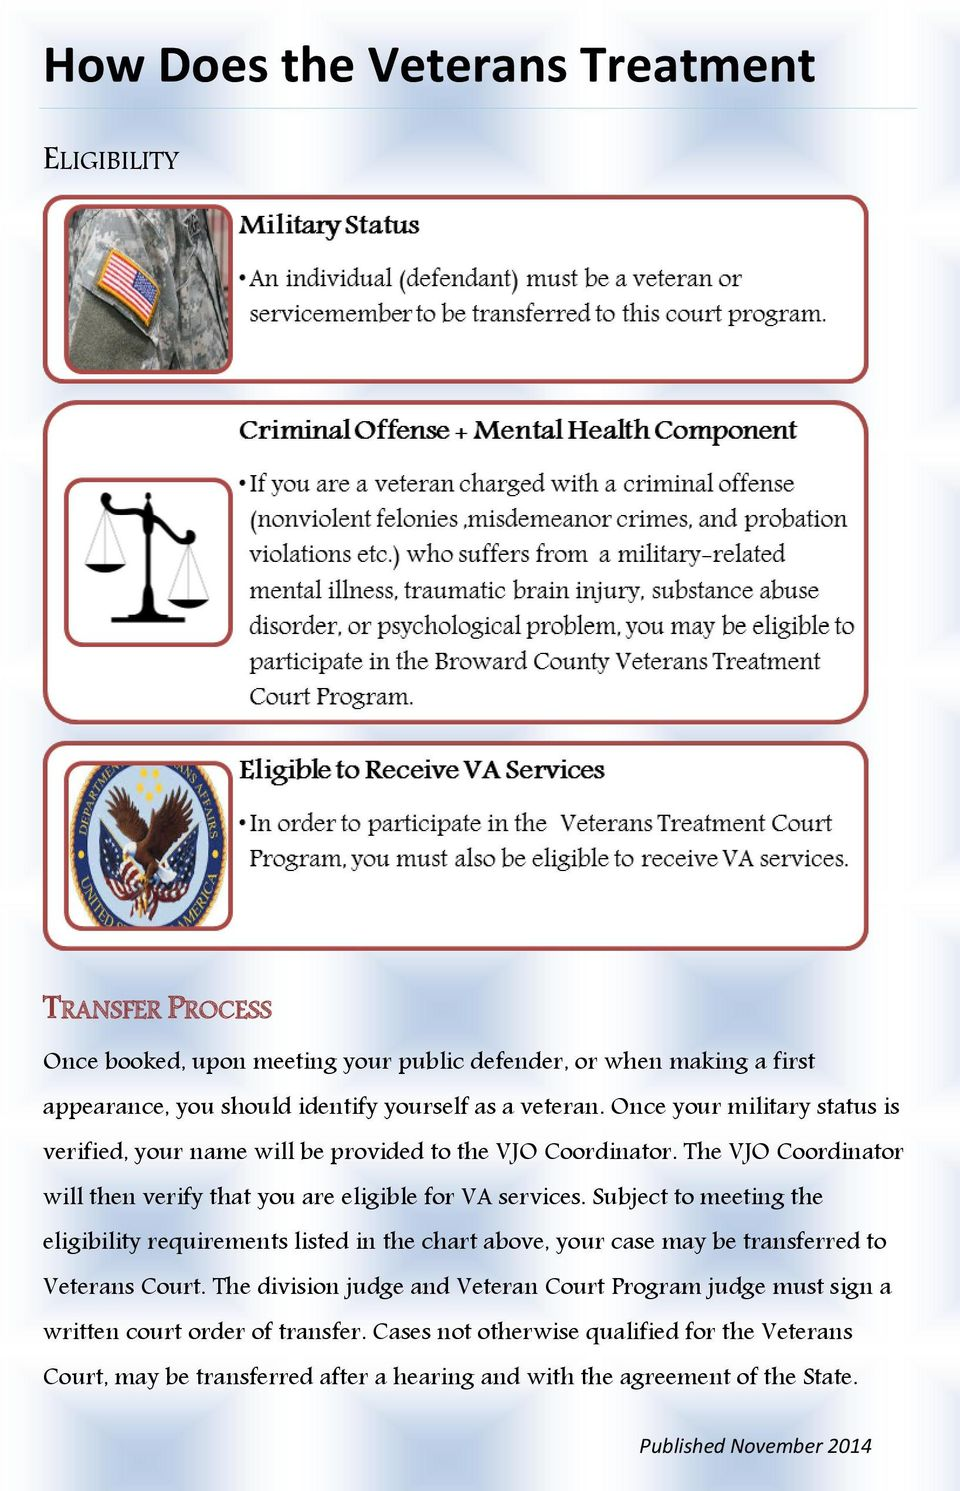 The VJO Coordinator will then verify that you are eligible for VA services.